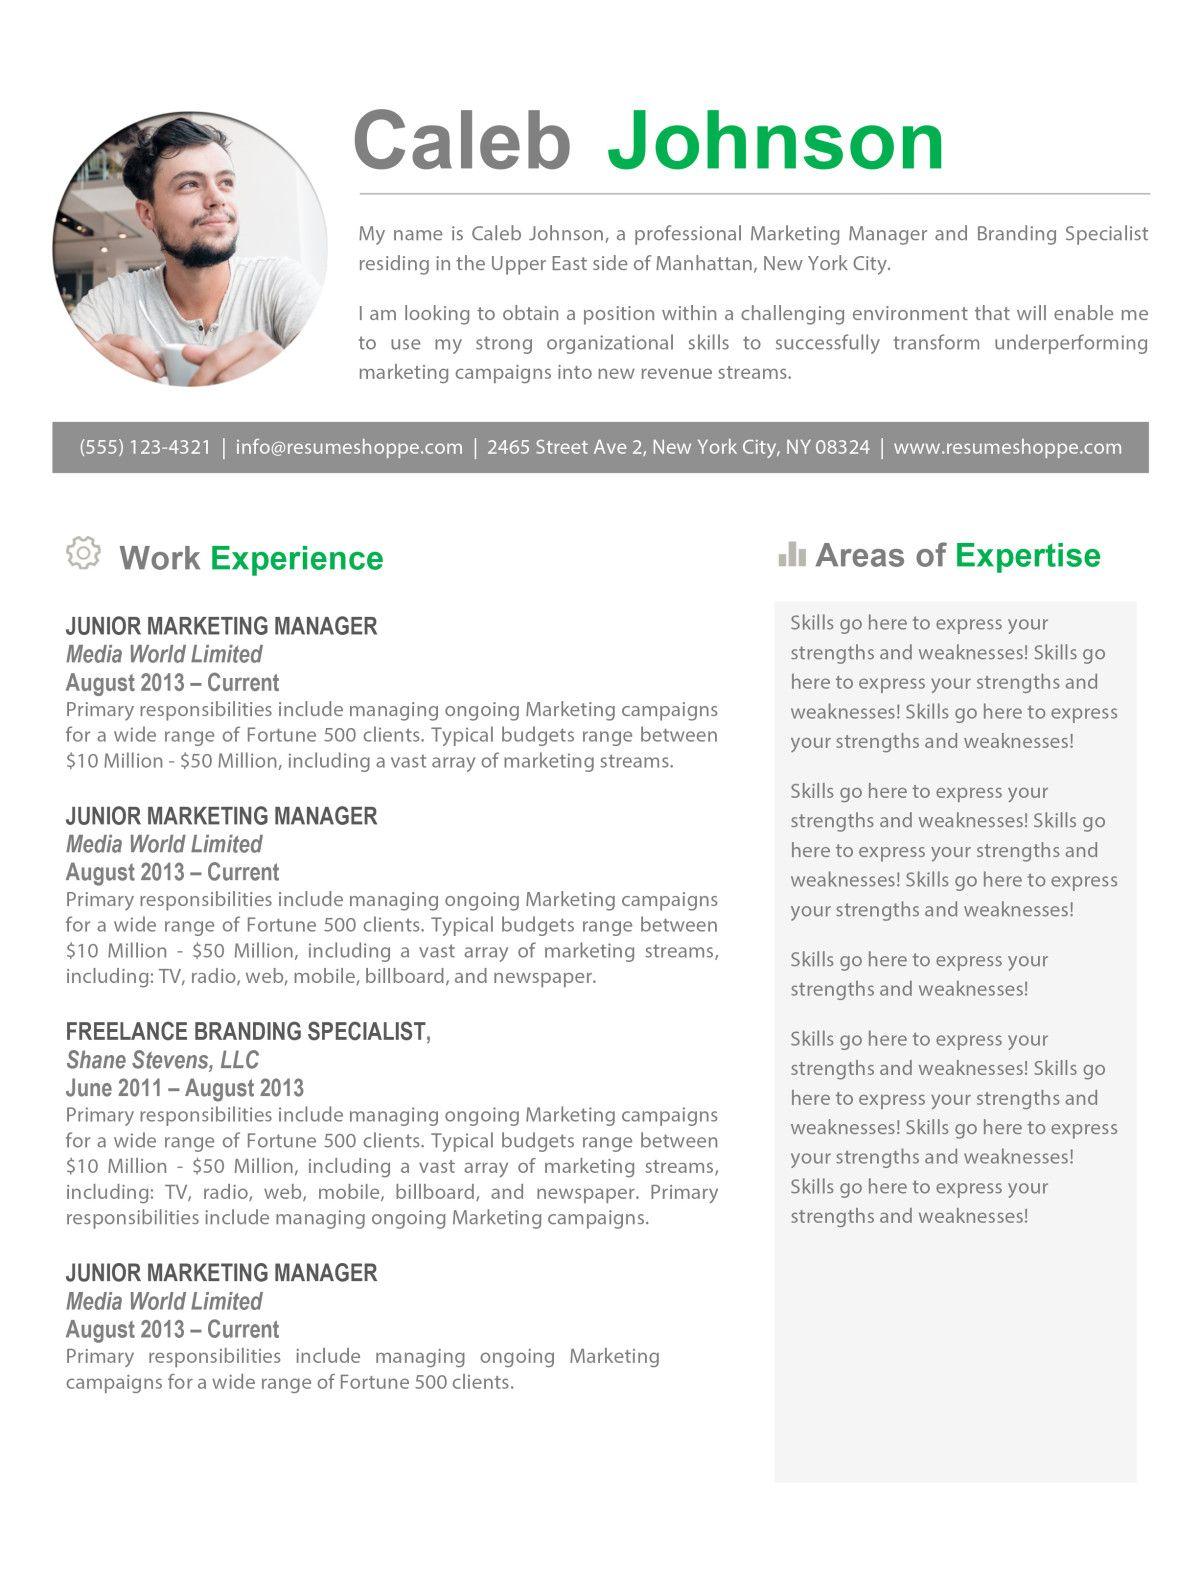 The Caleb Resume   Resume Shop